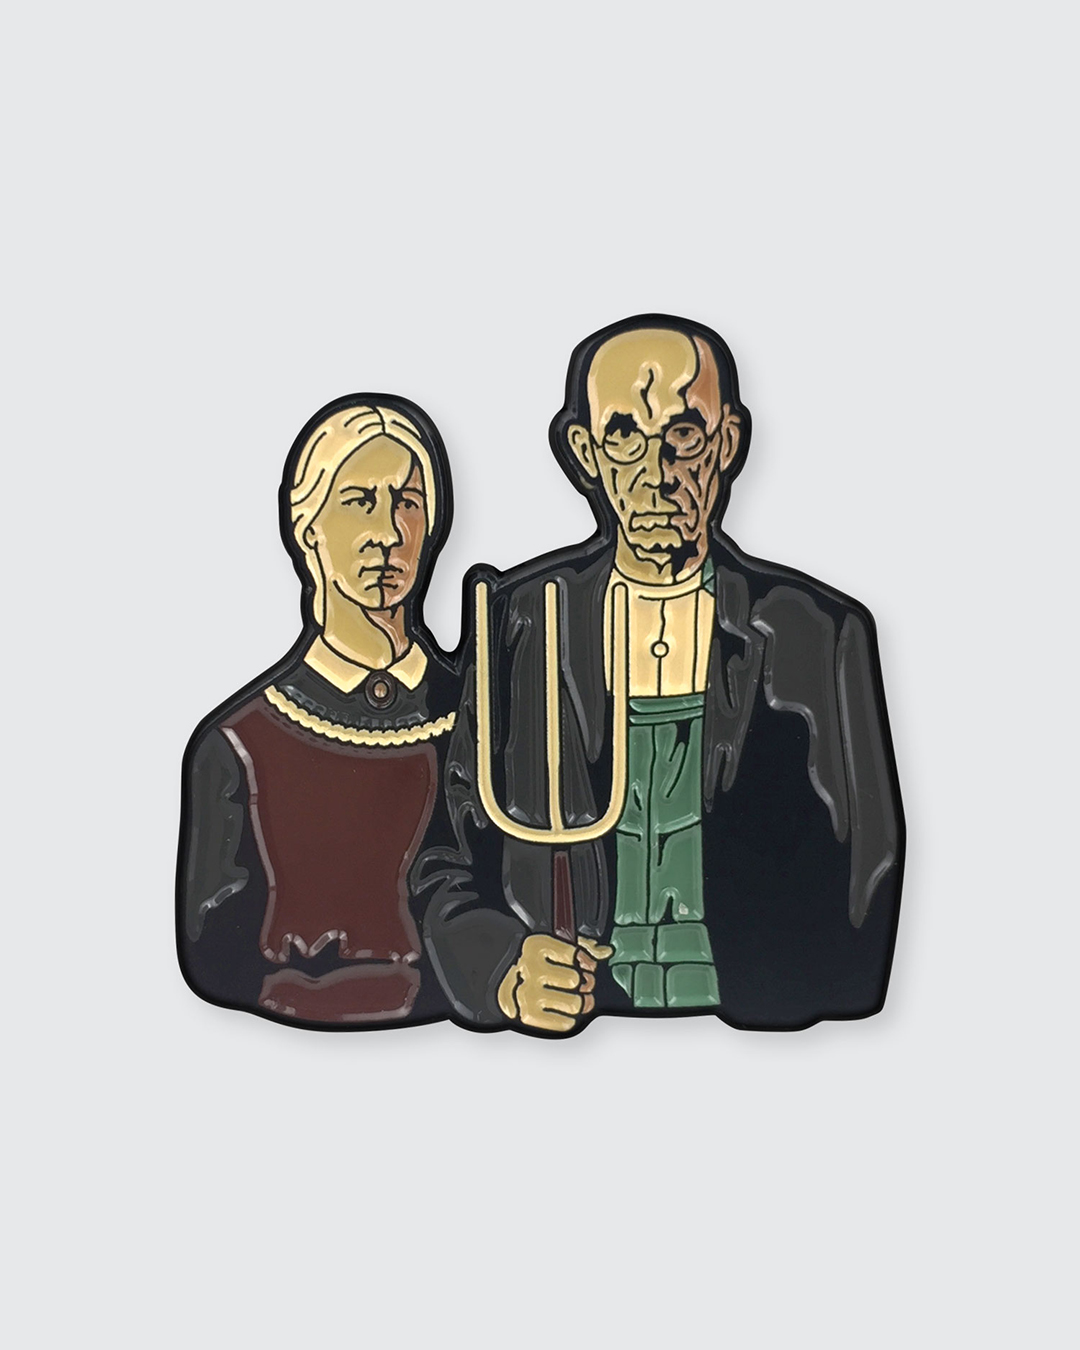 Art Enamel Pins Inspired by the Masters | Colossal